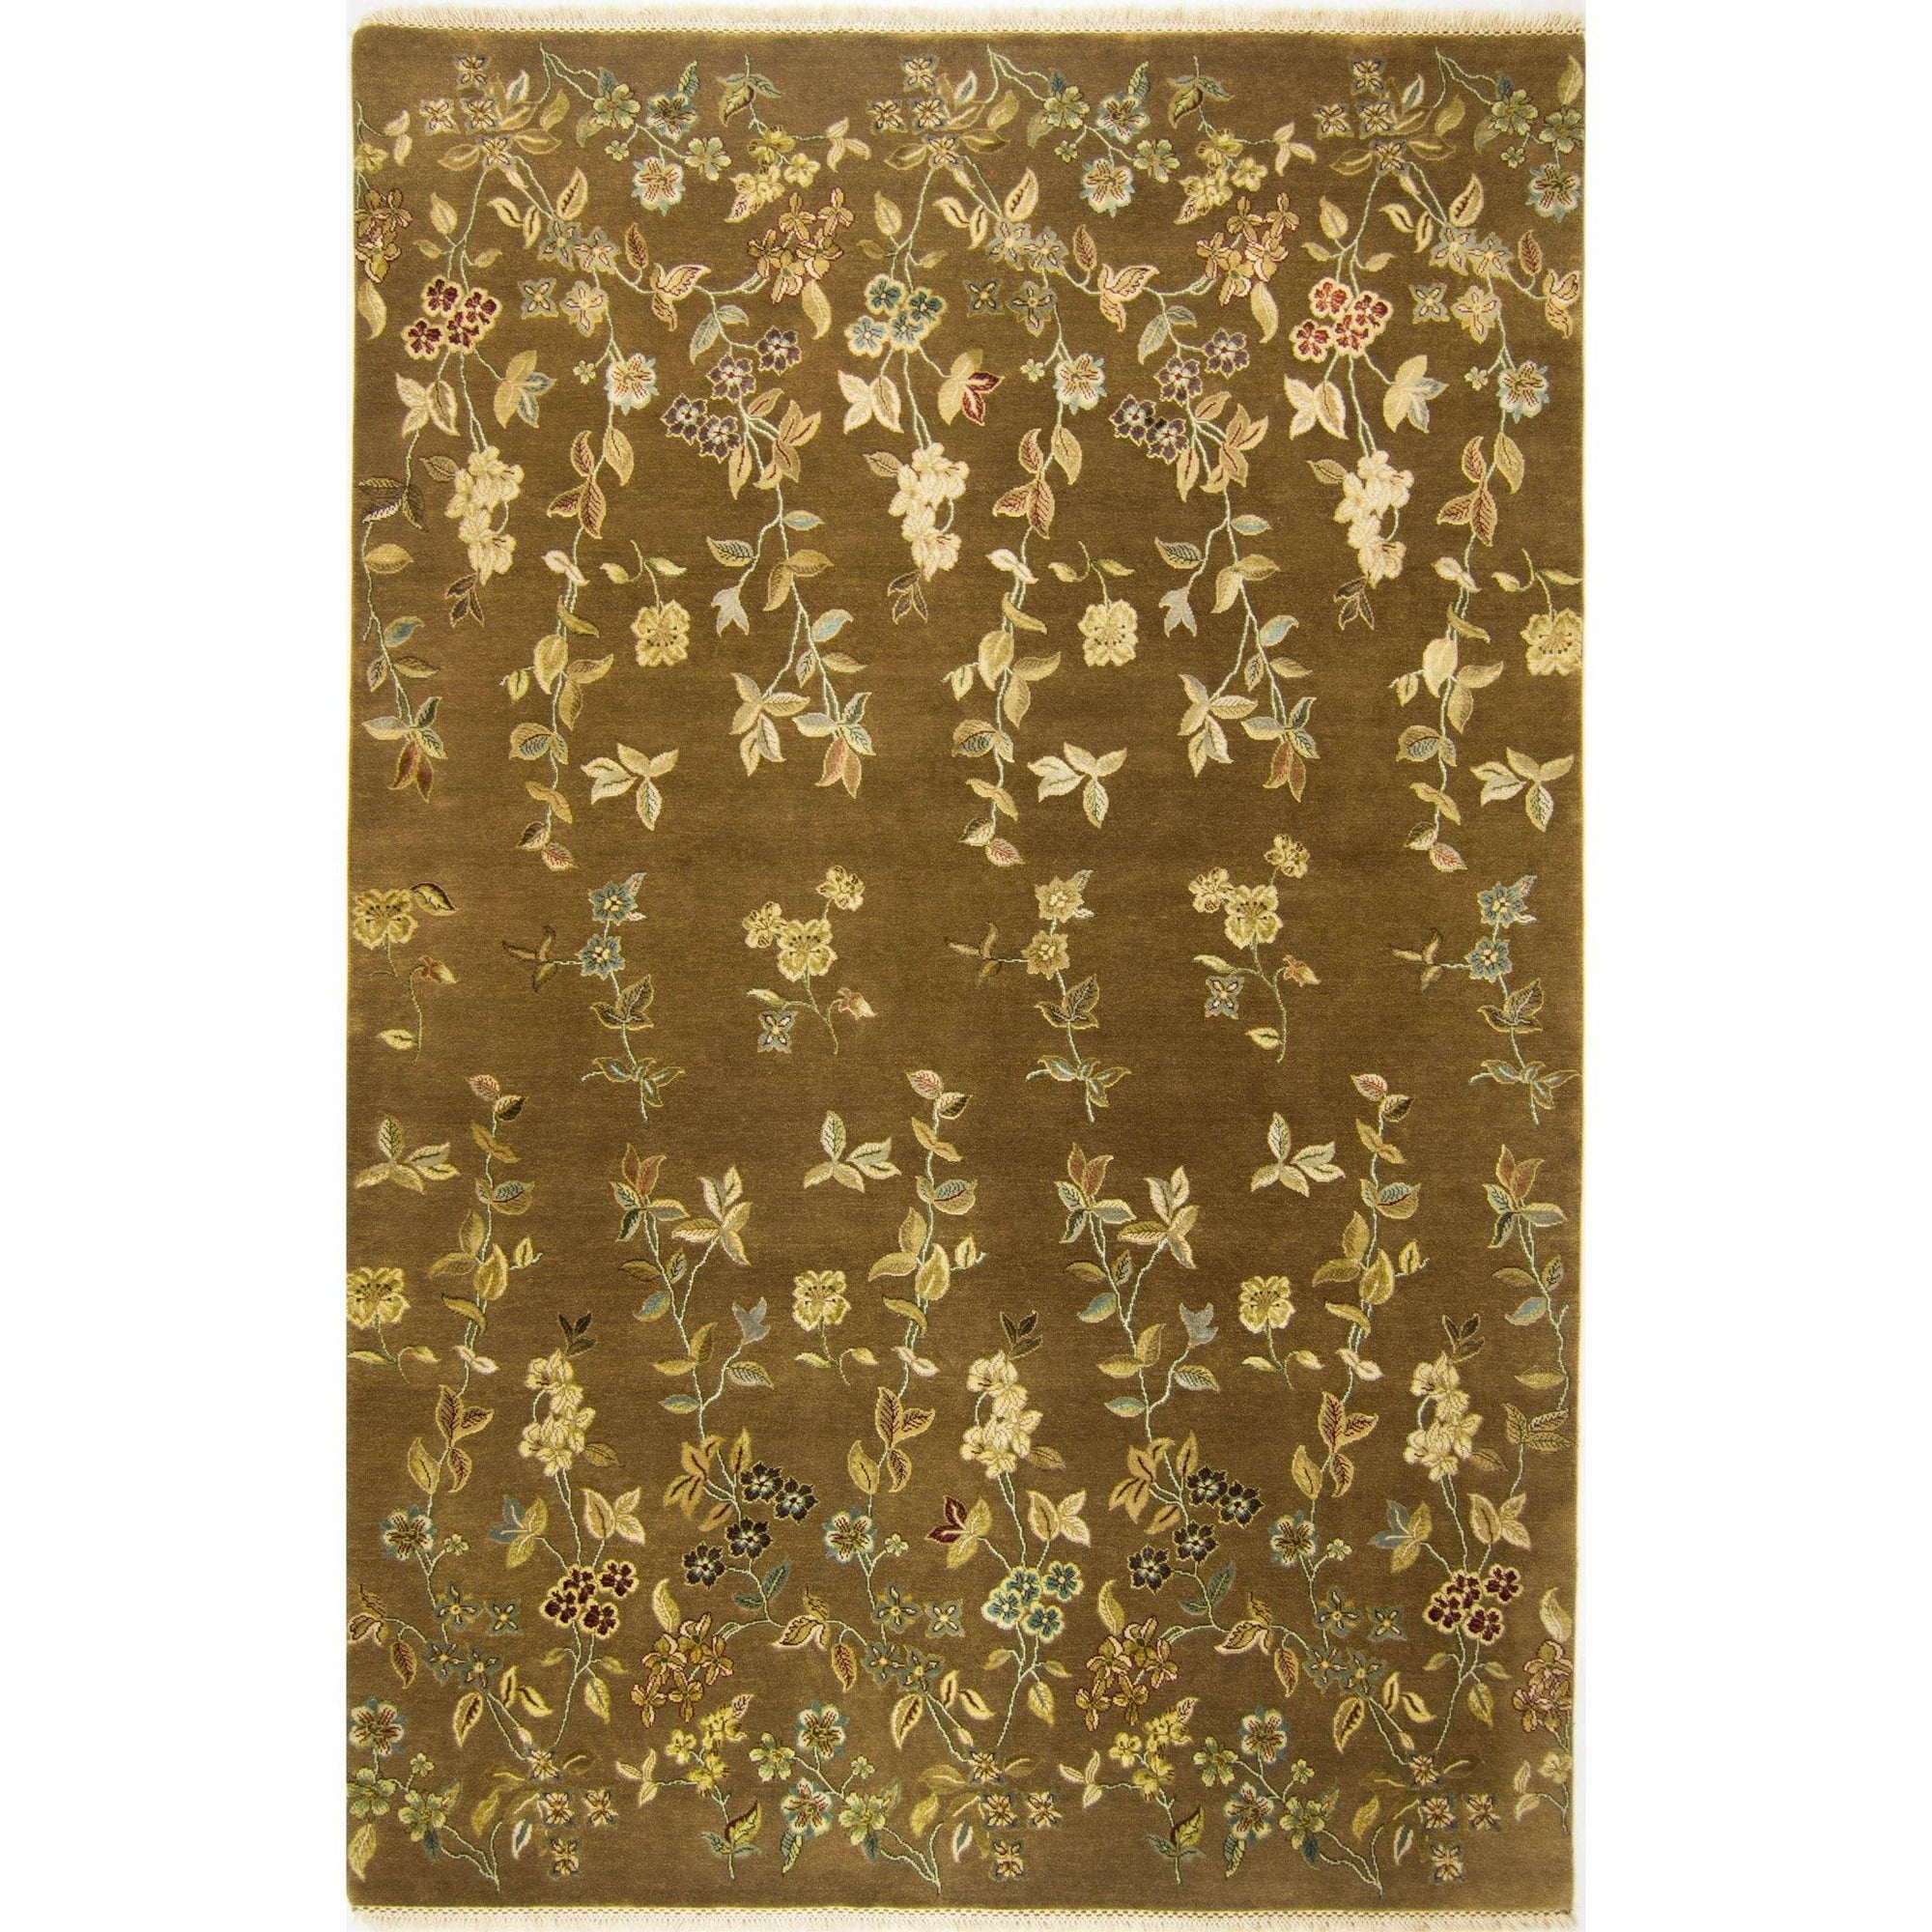 Modern High Quality Hand-knotted Wool & Silk Rug 186 cm x 281 cm Persian-Rug | House-of-Haghi | NewMarket | Auckland | NZ | Handmade Persian Rugs | Hand Knotted Persian Rugs